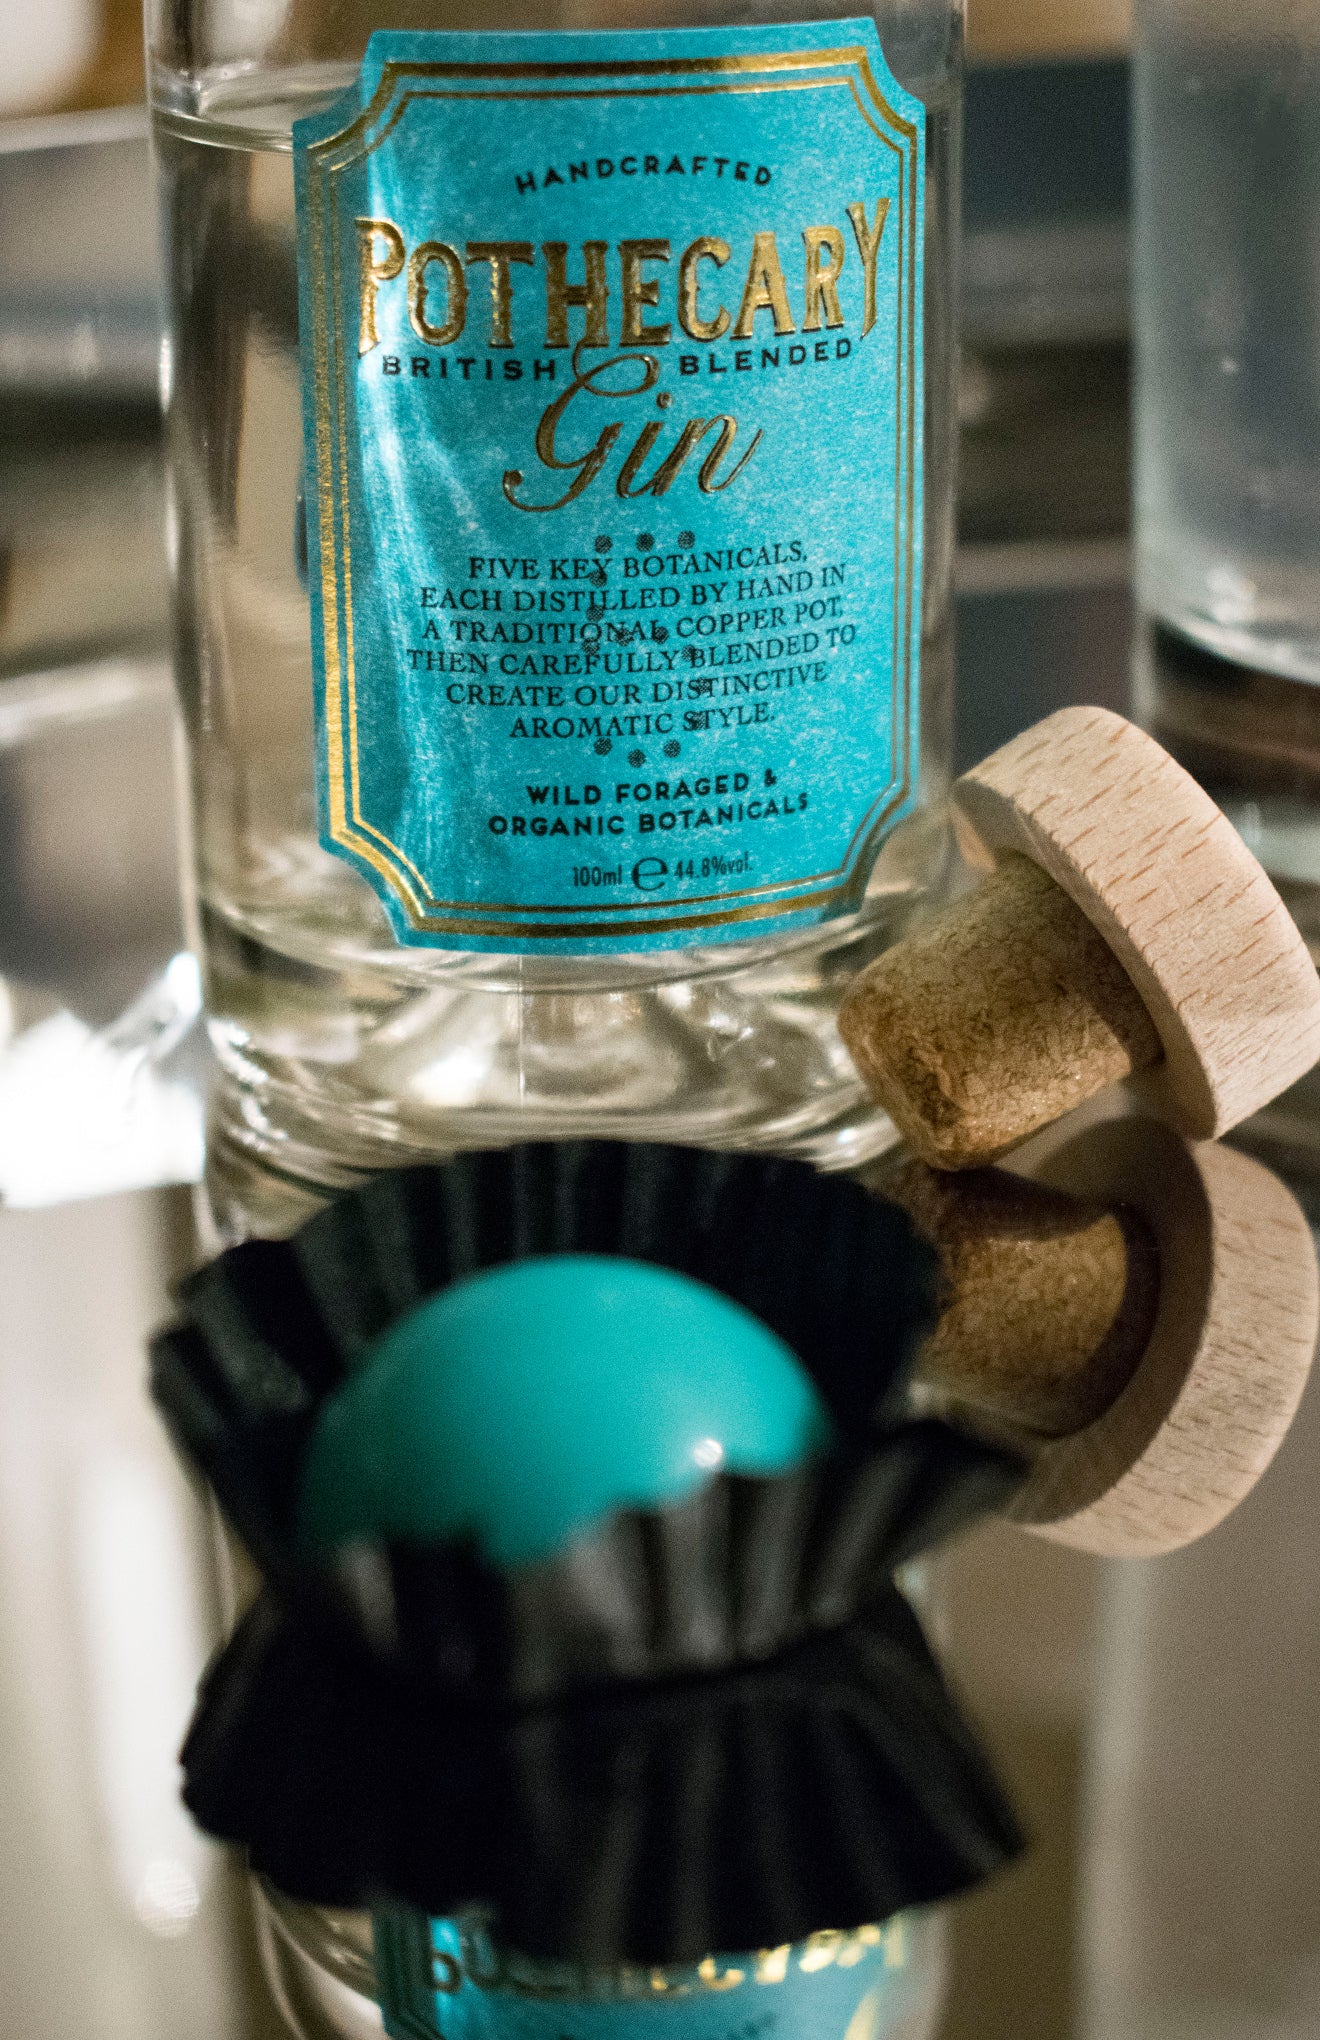 Miss Witt chocolate collaboration with Pothecary Gin